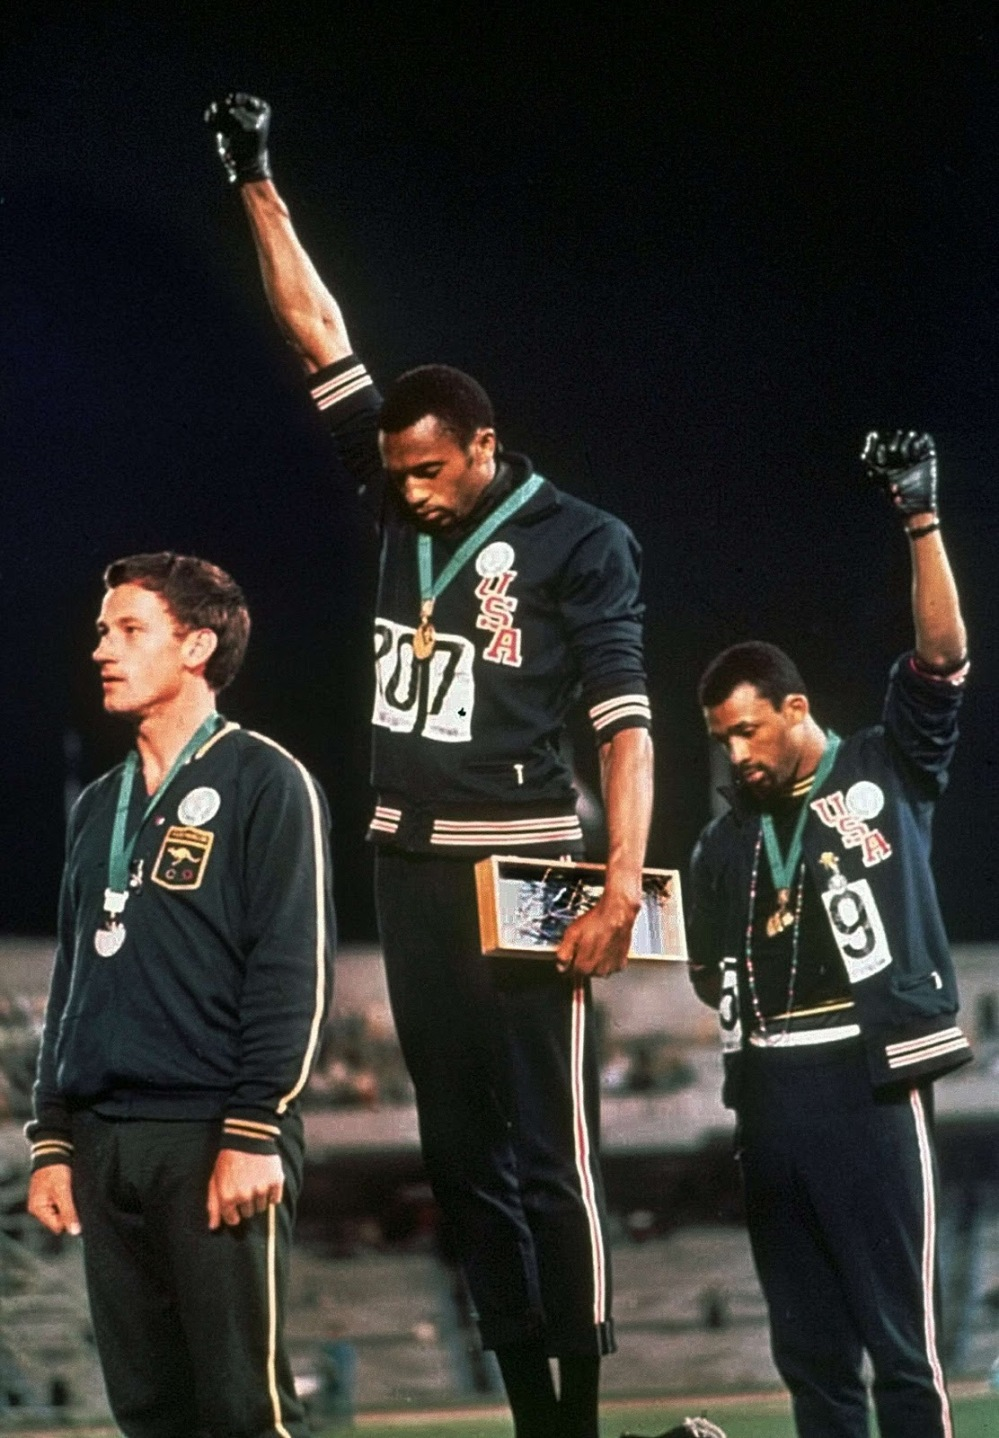 griot-magazine-peter-norman-white-man-in-that-photo-black-power-salute